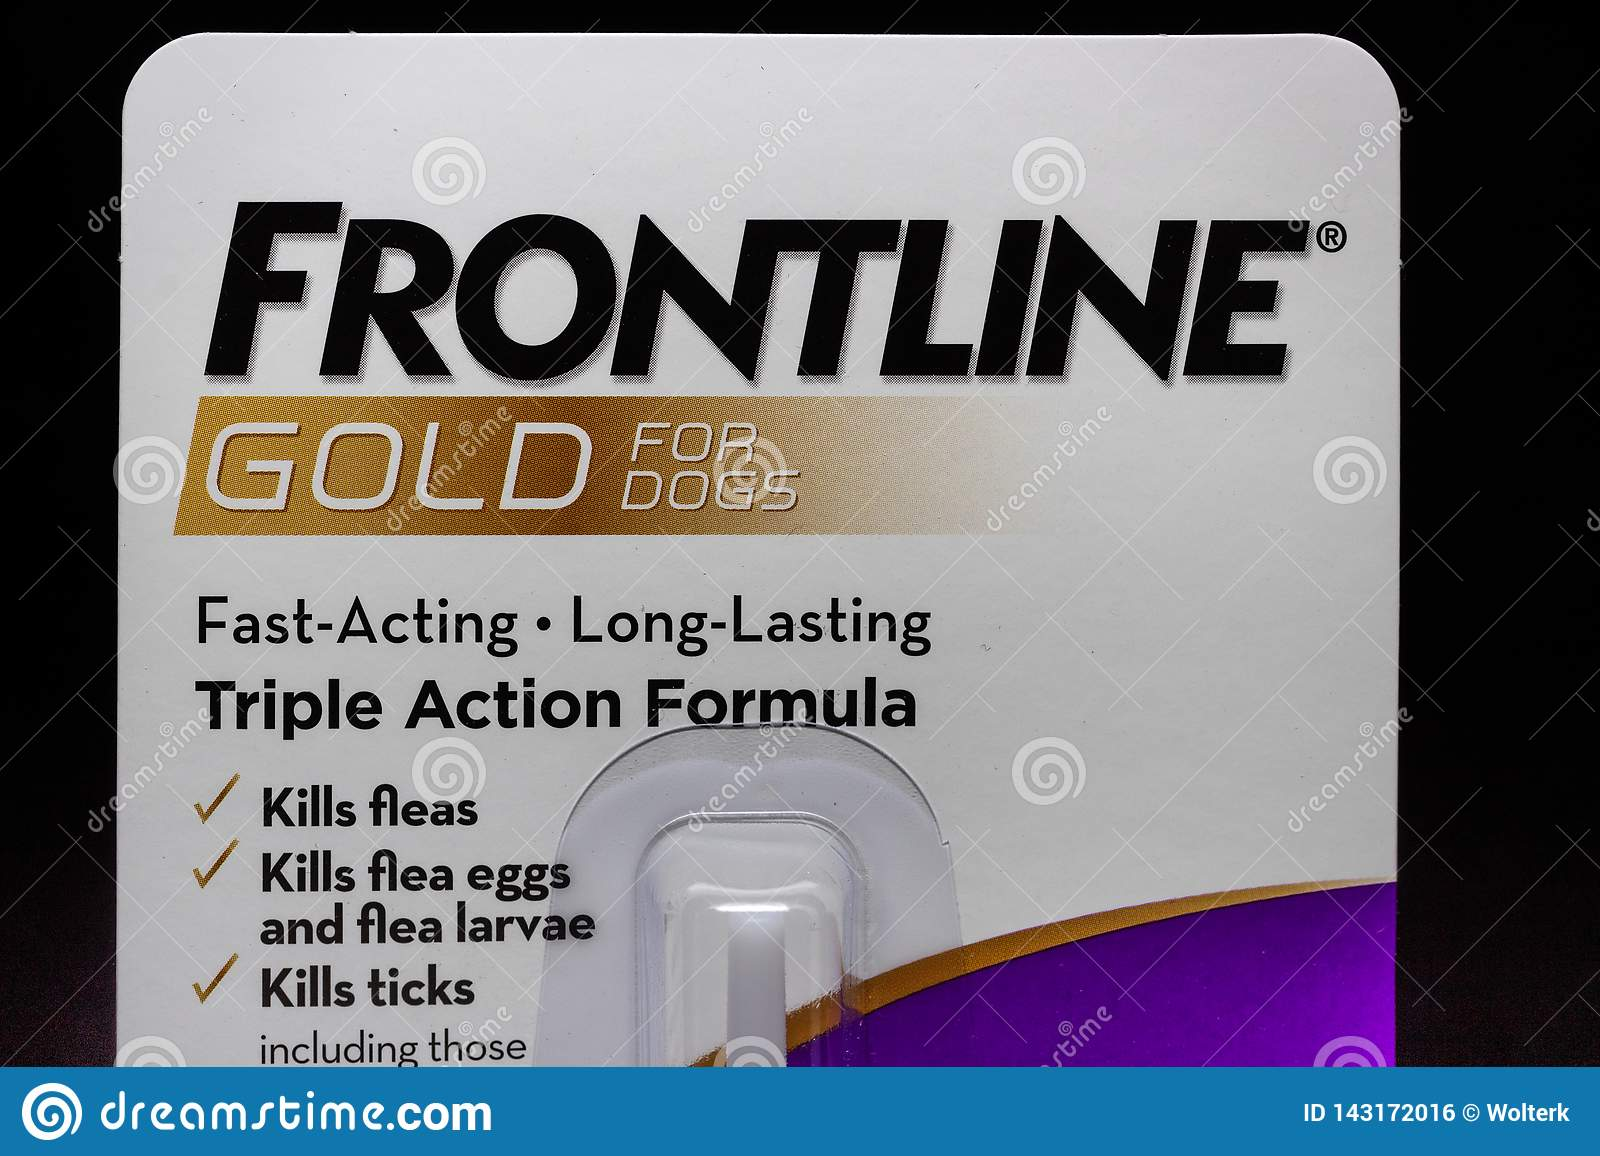 Frontline Gold Container and Trademark Logo